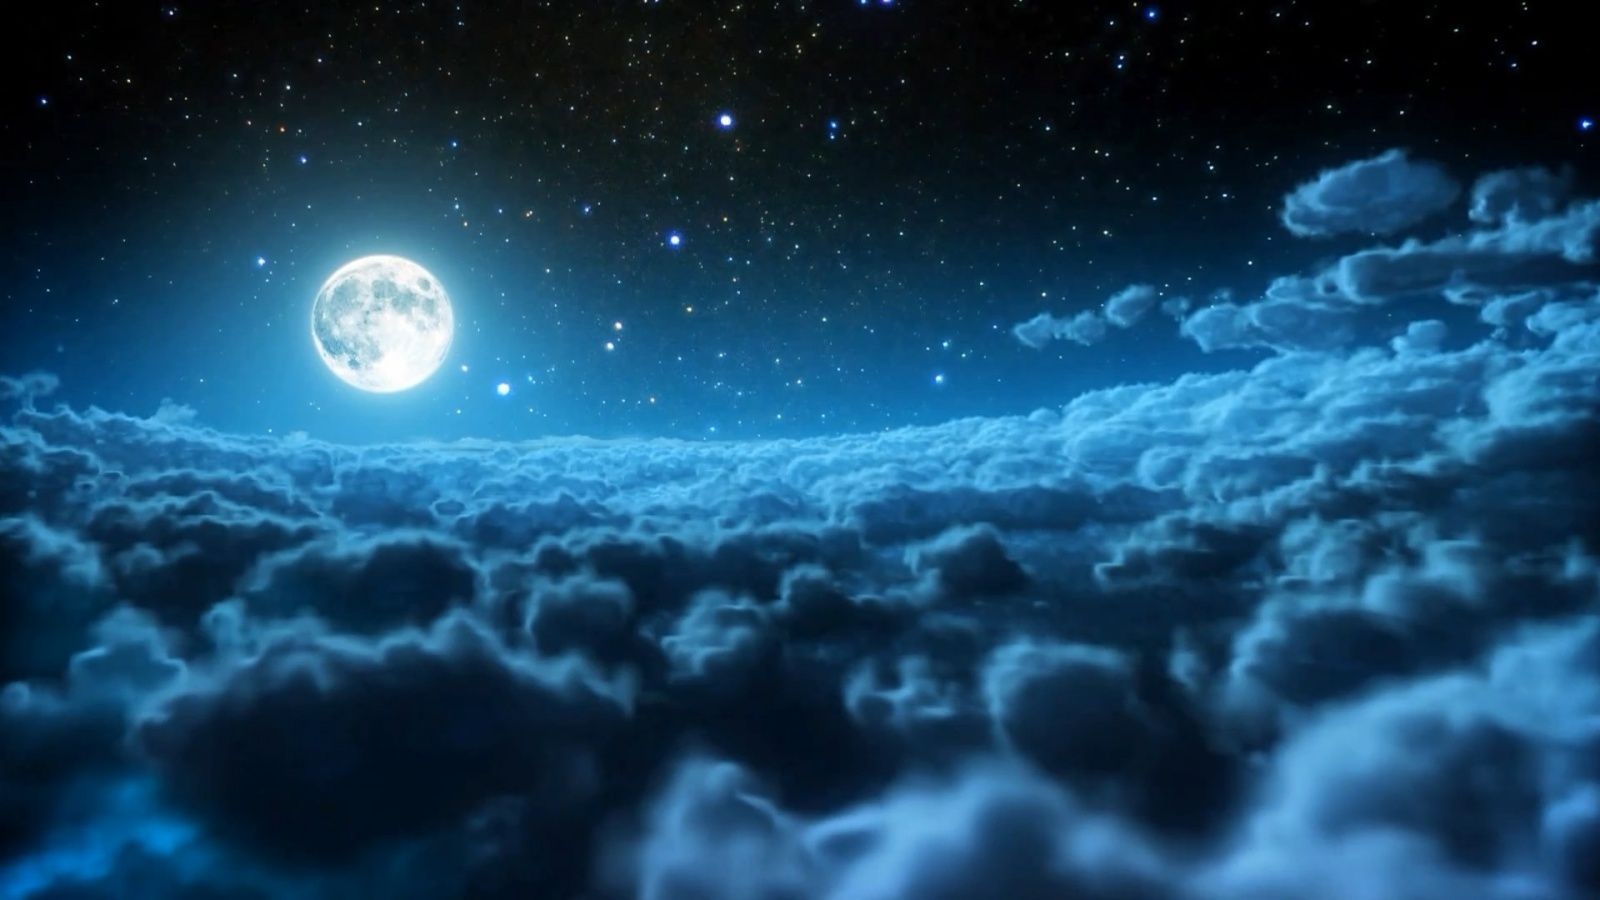 blue night sky wallpaper free wallpaper download 1600×900 blue night